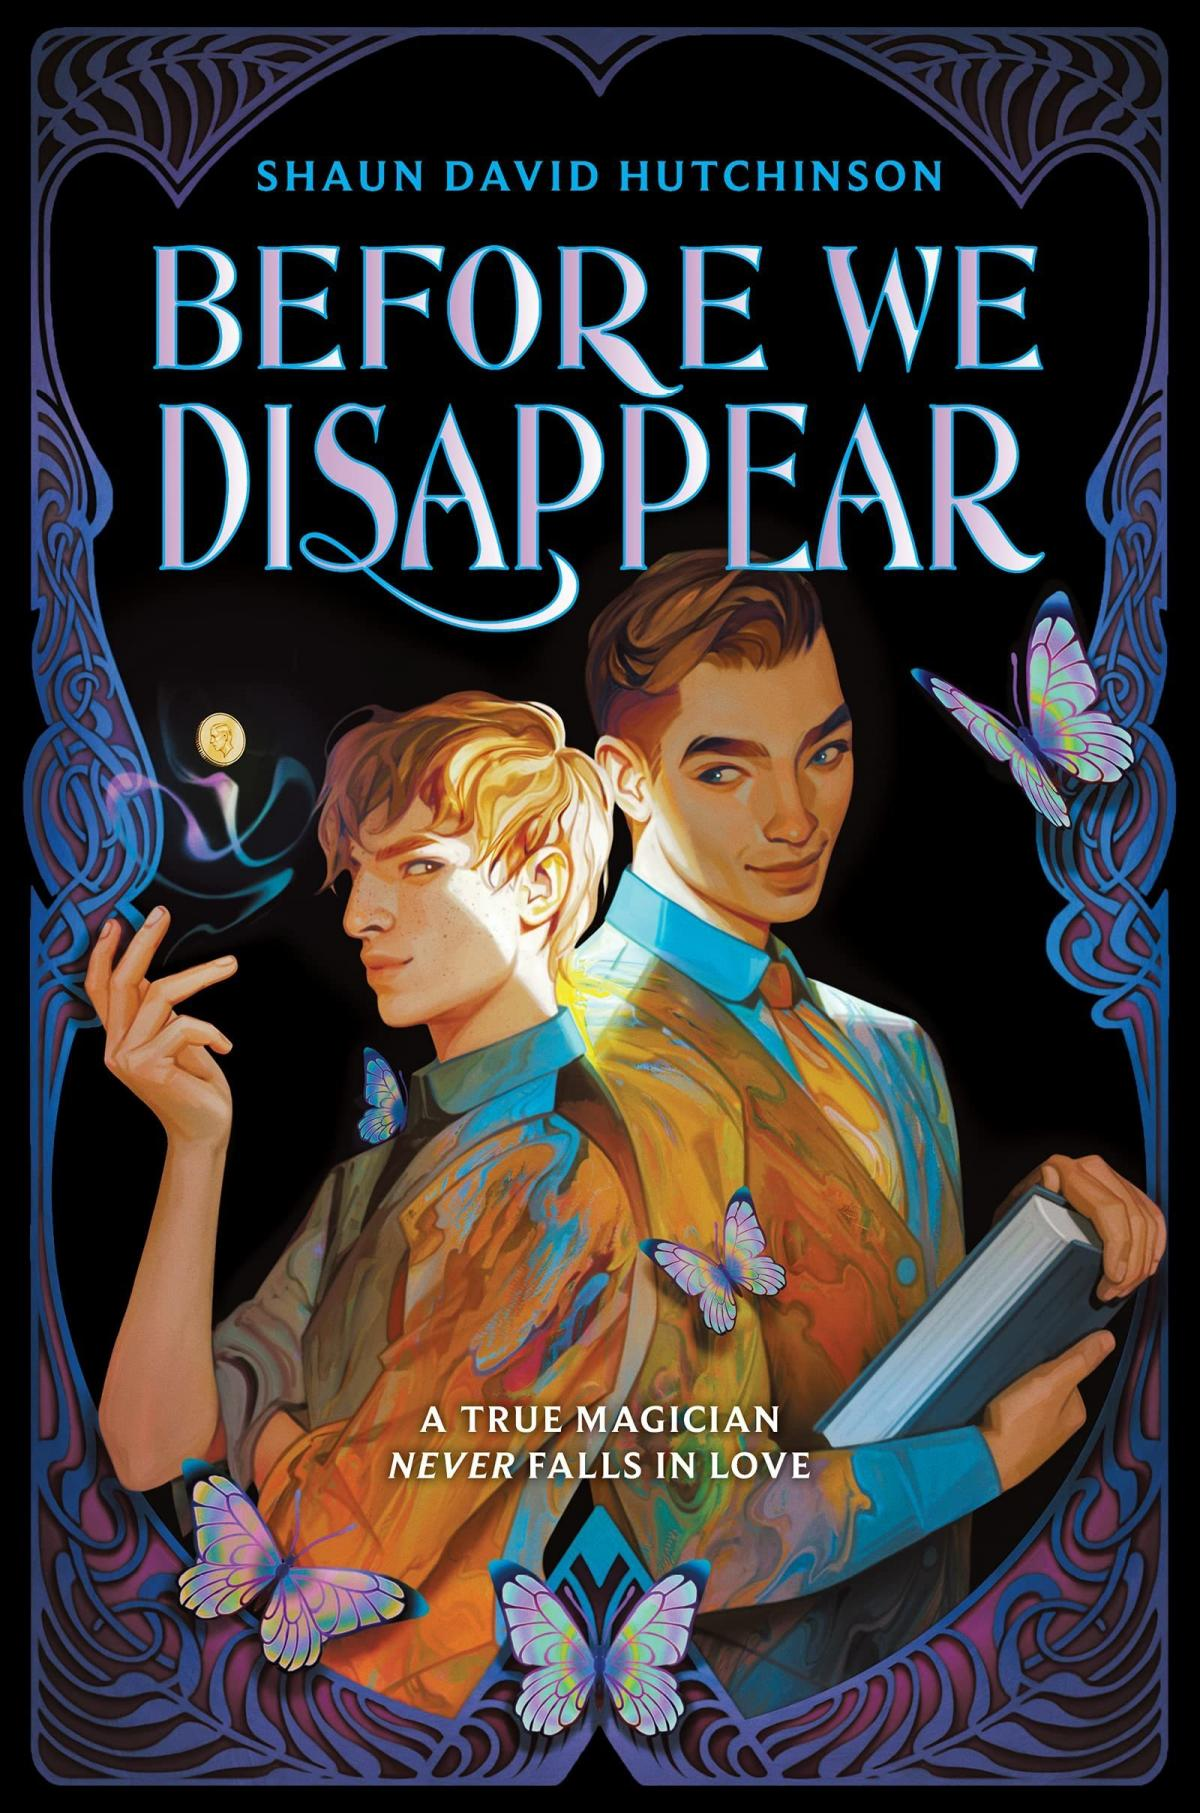 Before We Disappear, by Shaun David Hutchinson